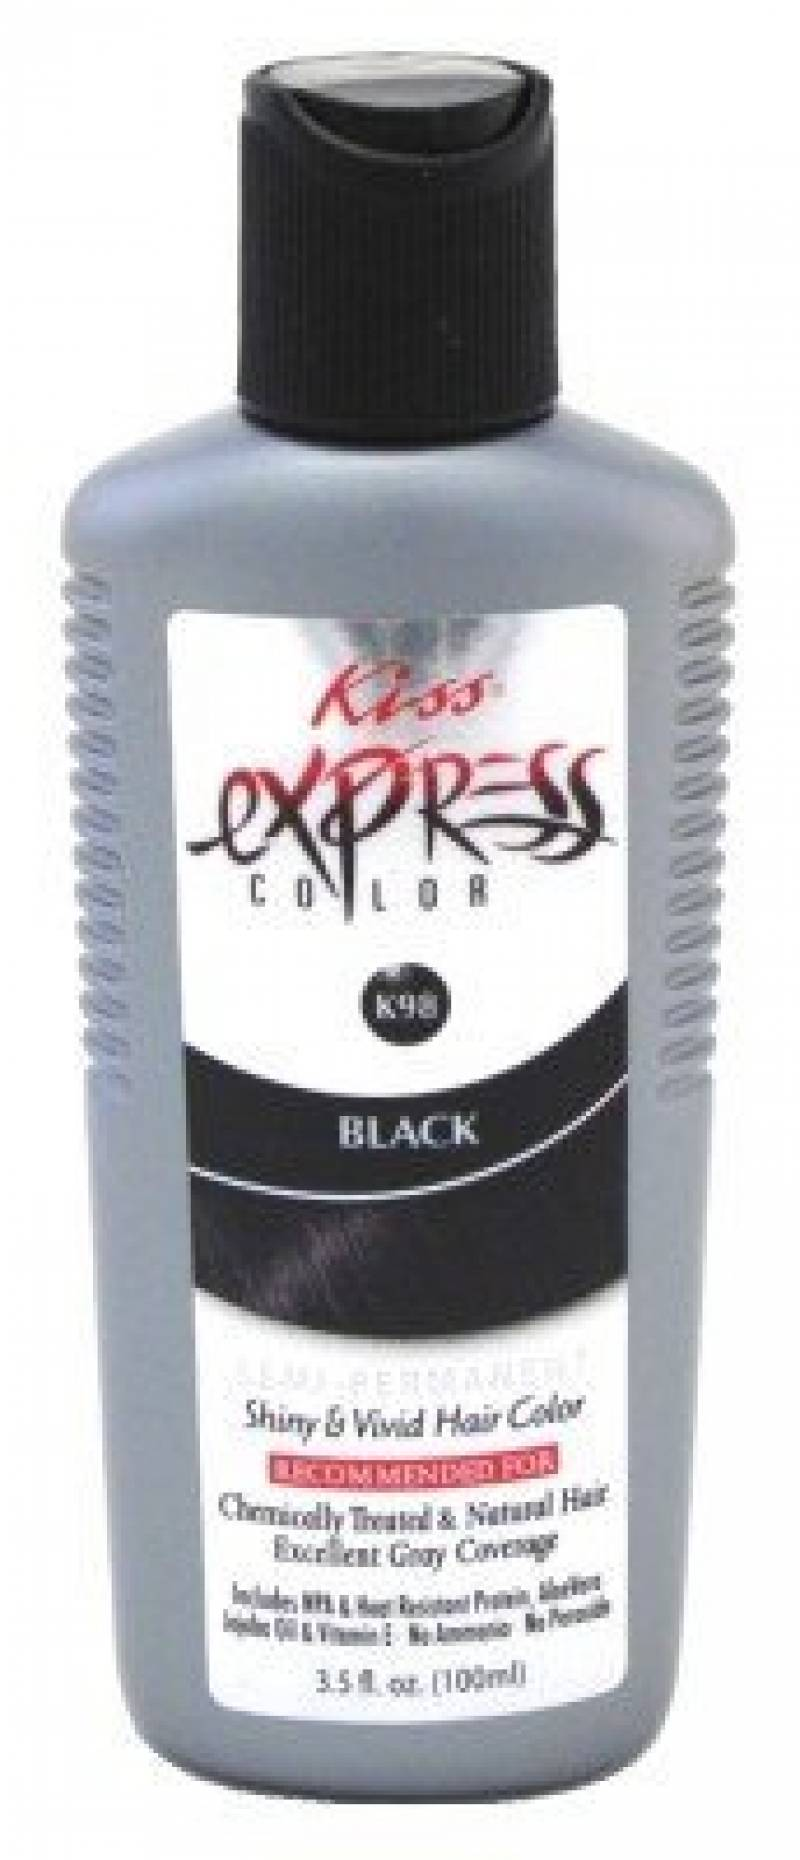 kiss express hair color instructions